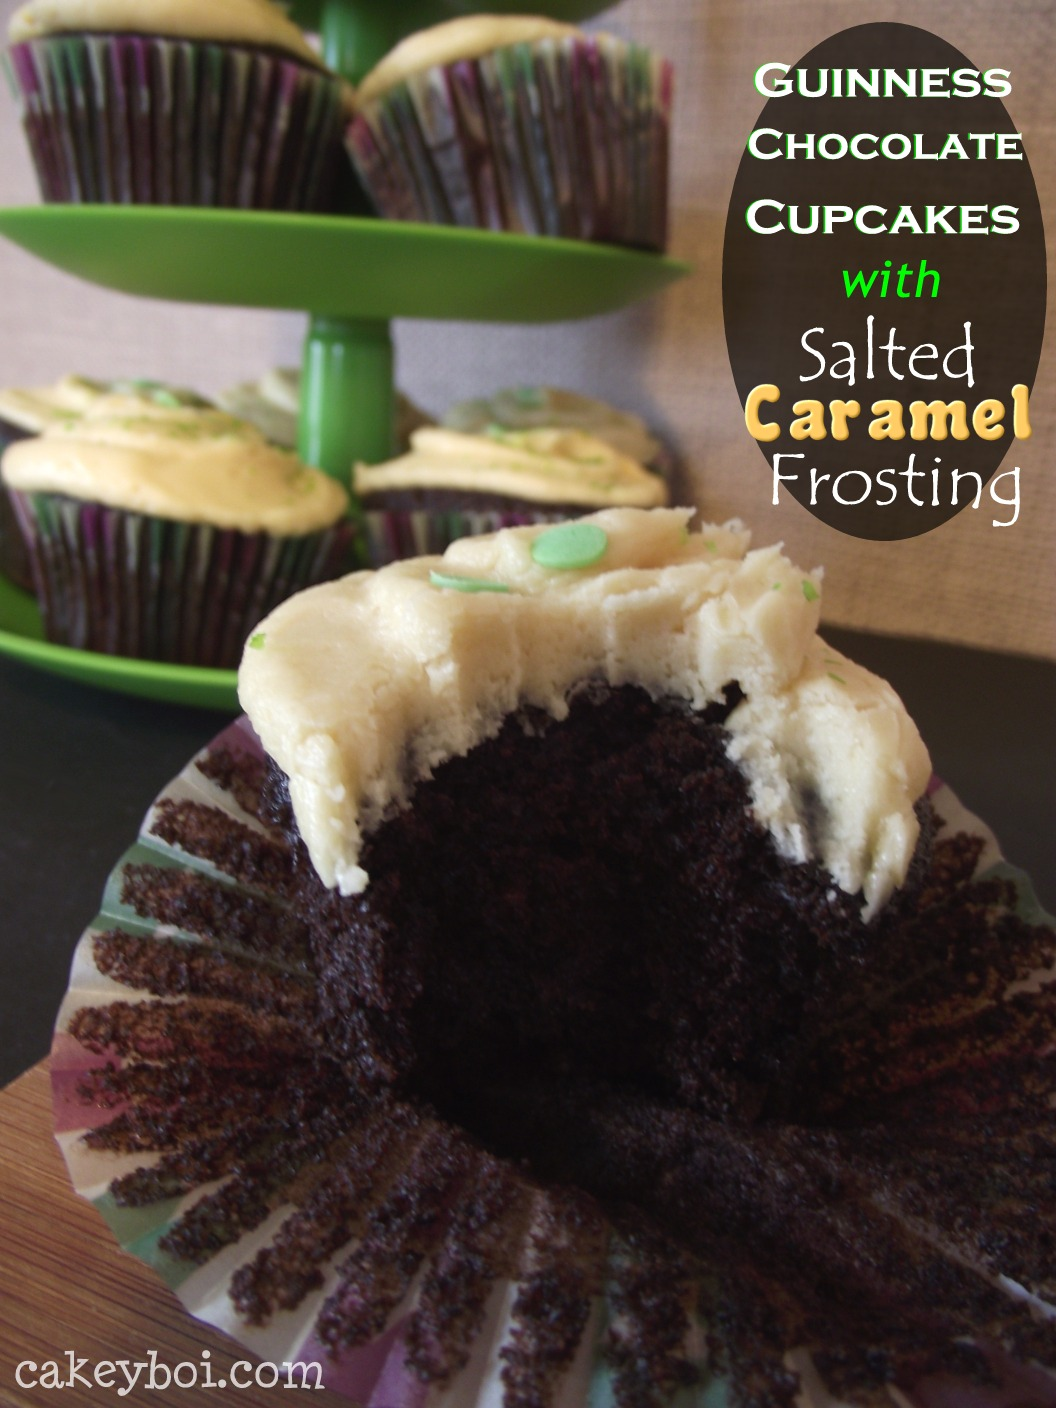 Chocolate Guinness Cupcakes, Salted Caramel Frosting